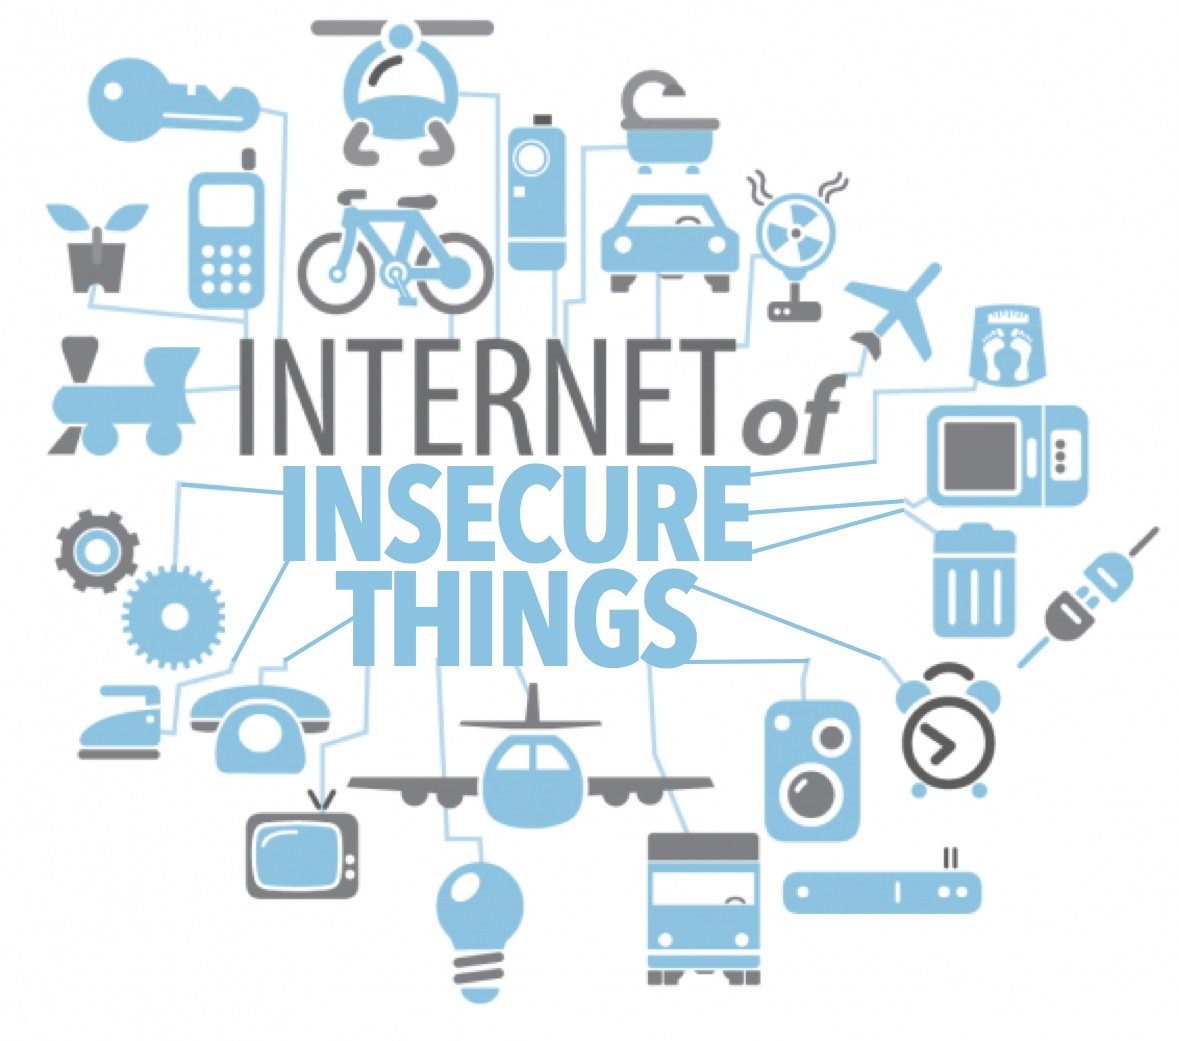 The Internet of Insecure Things